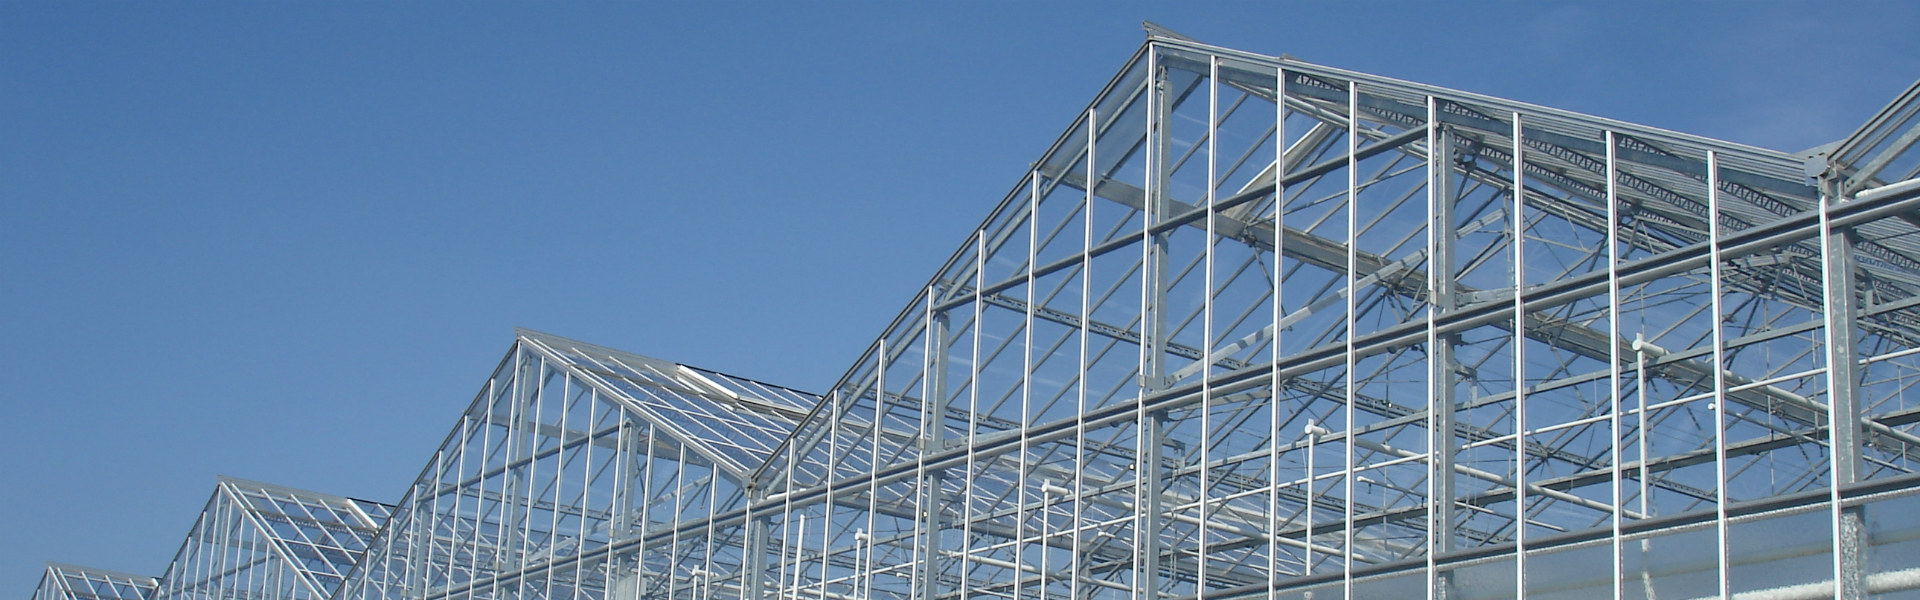 Widespan greenhouse roof system